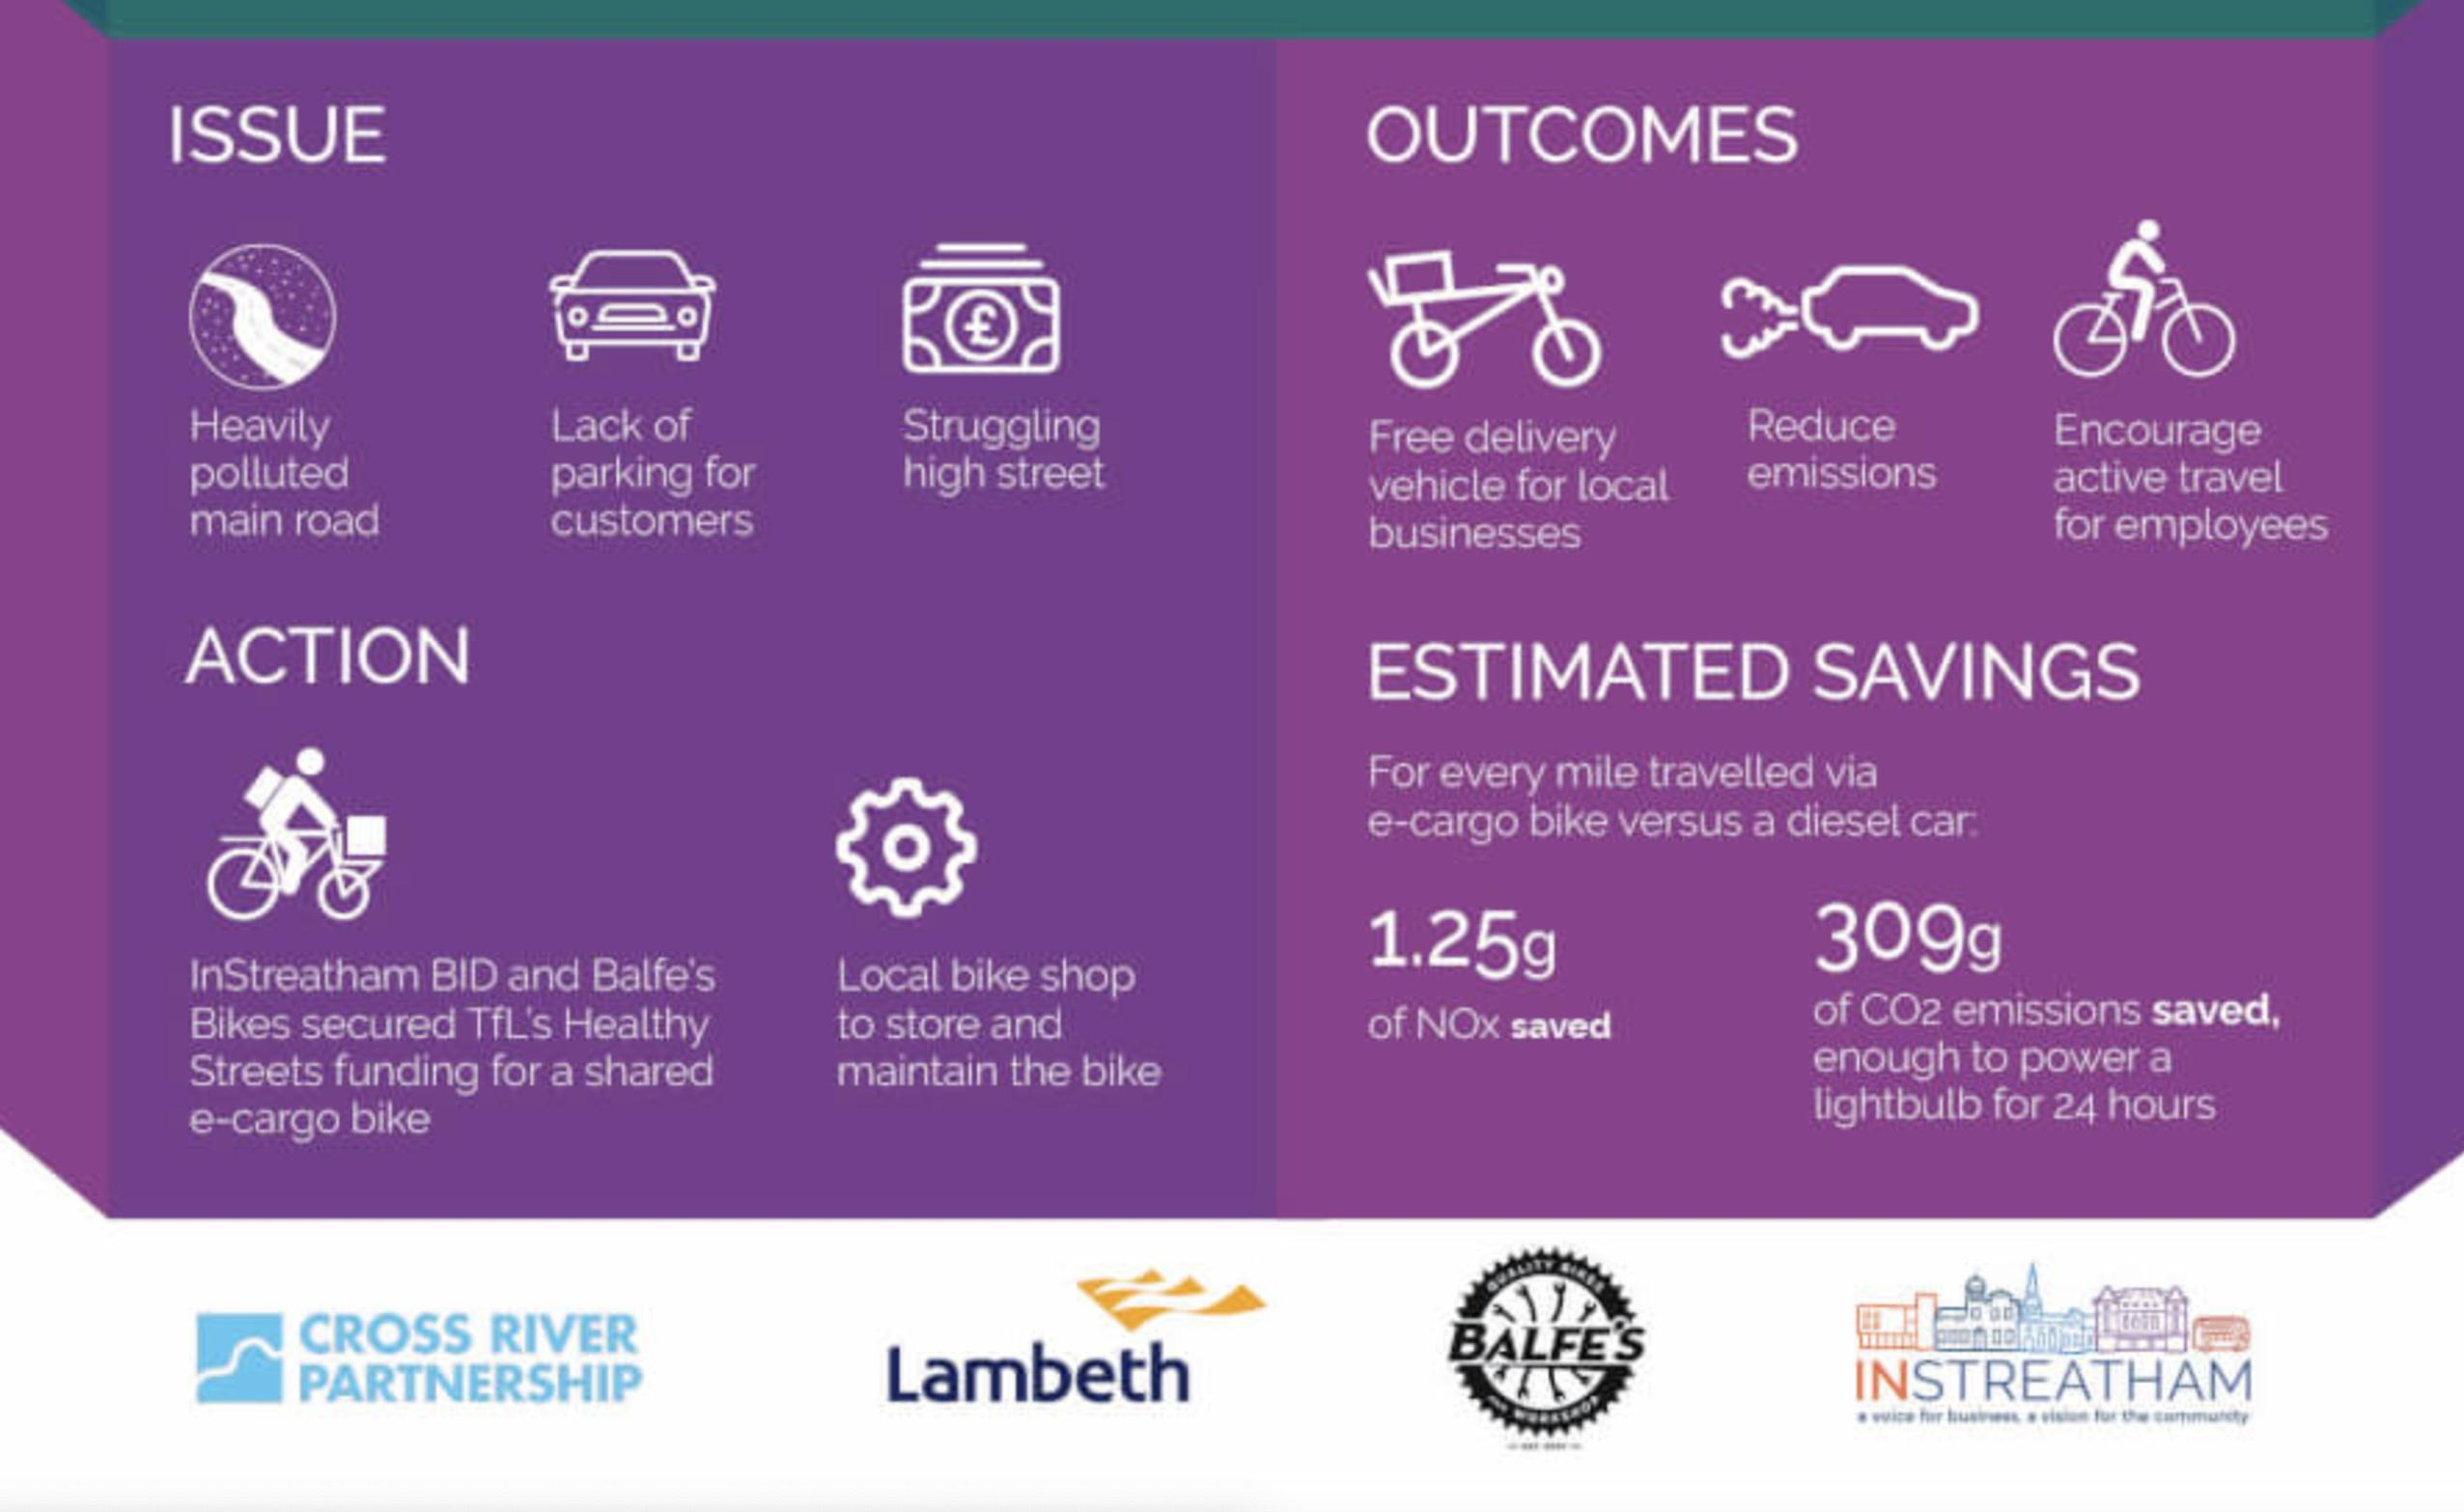 Positive impacts from a CRP e-cargo bike supported scheme